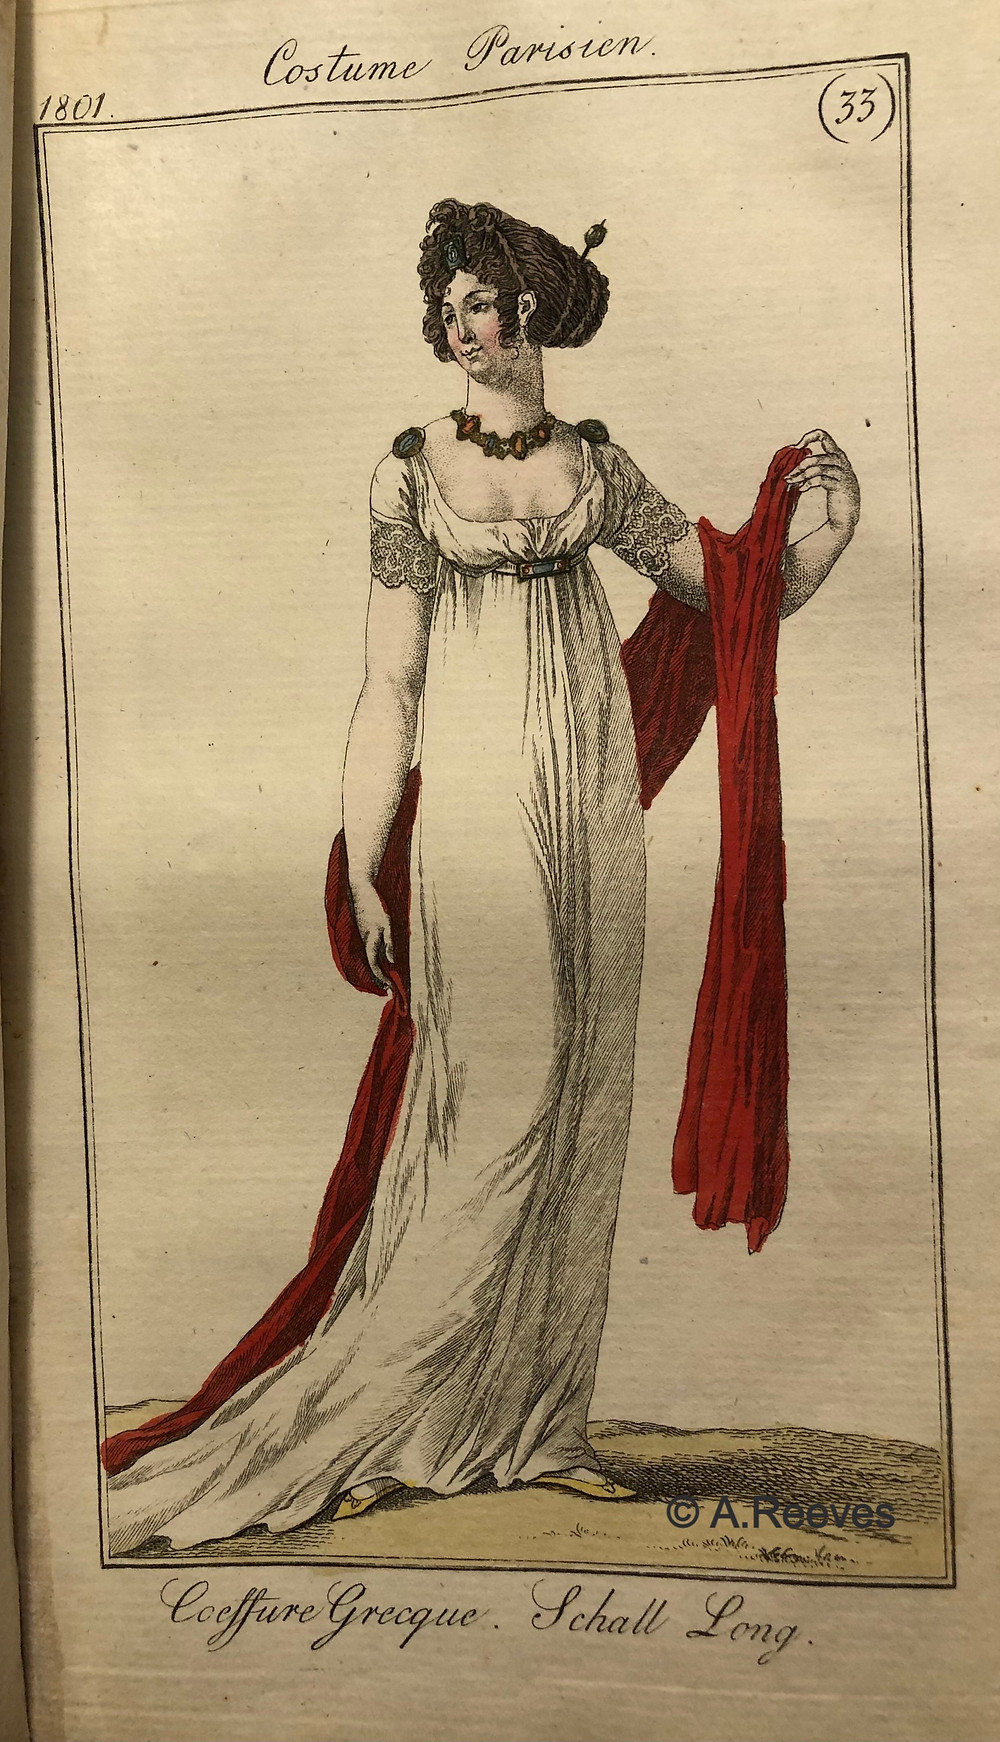 Lady of Fashion with Grecian Hair, white dress and a long red shawl.